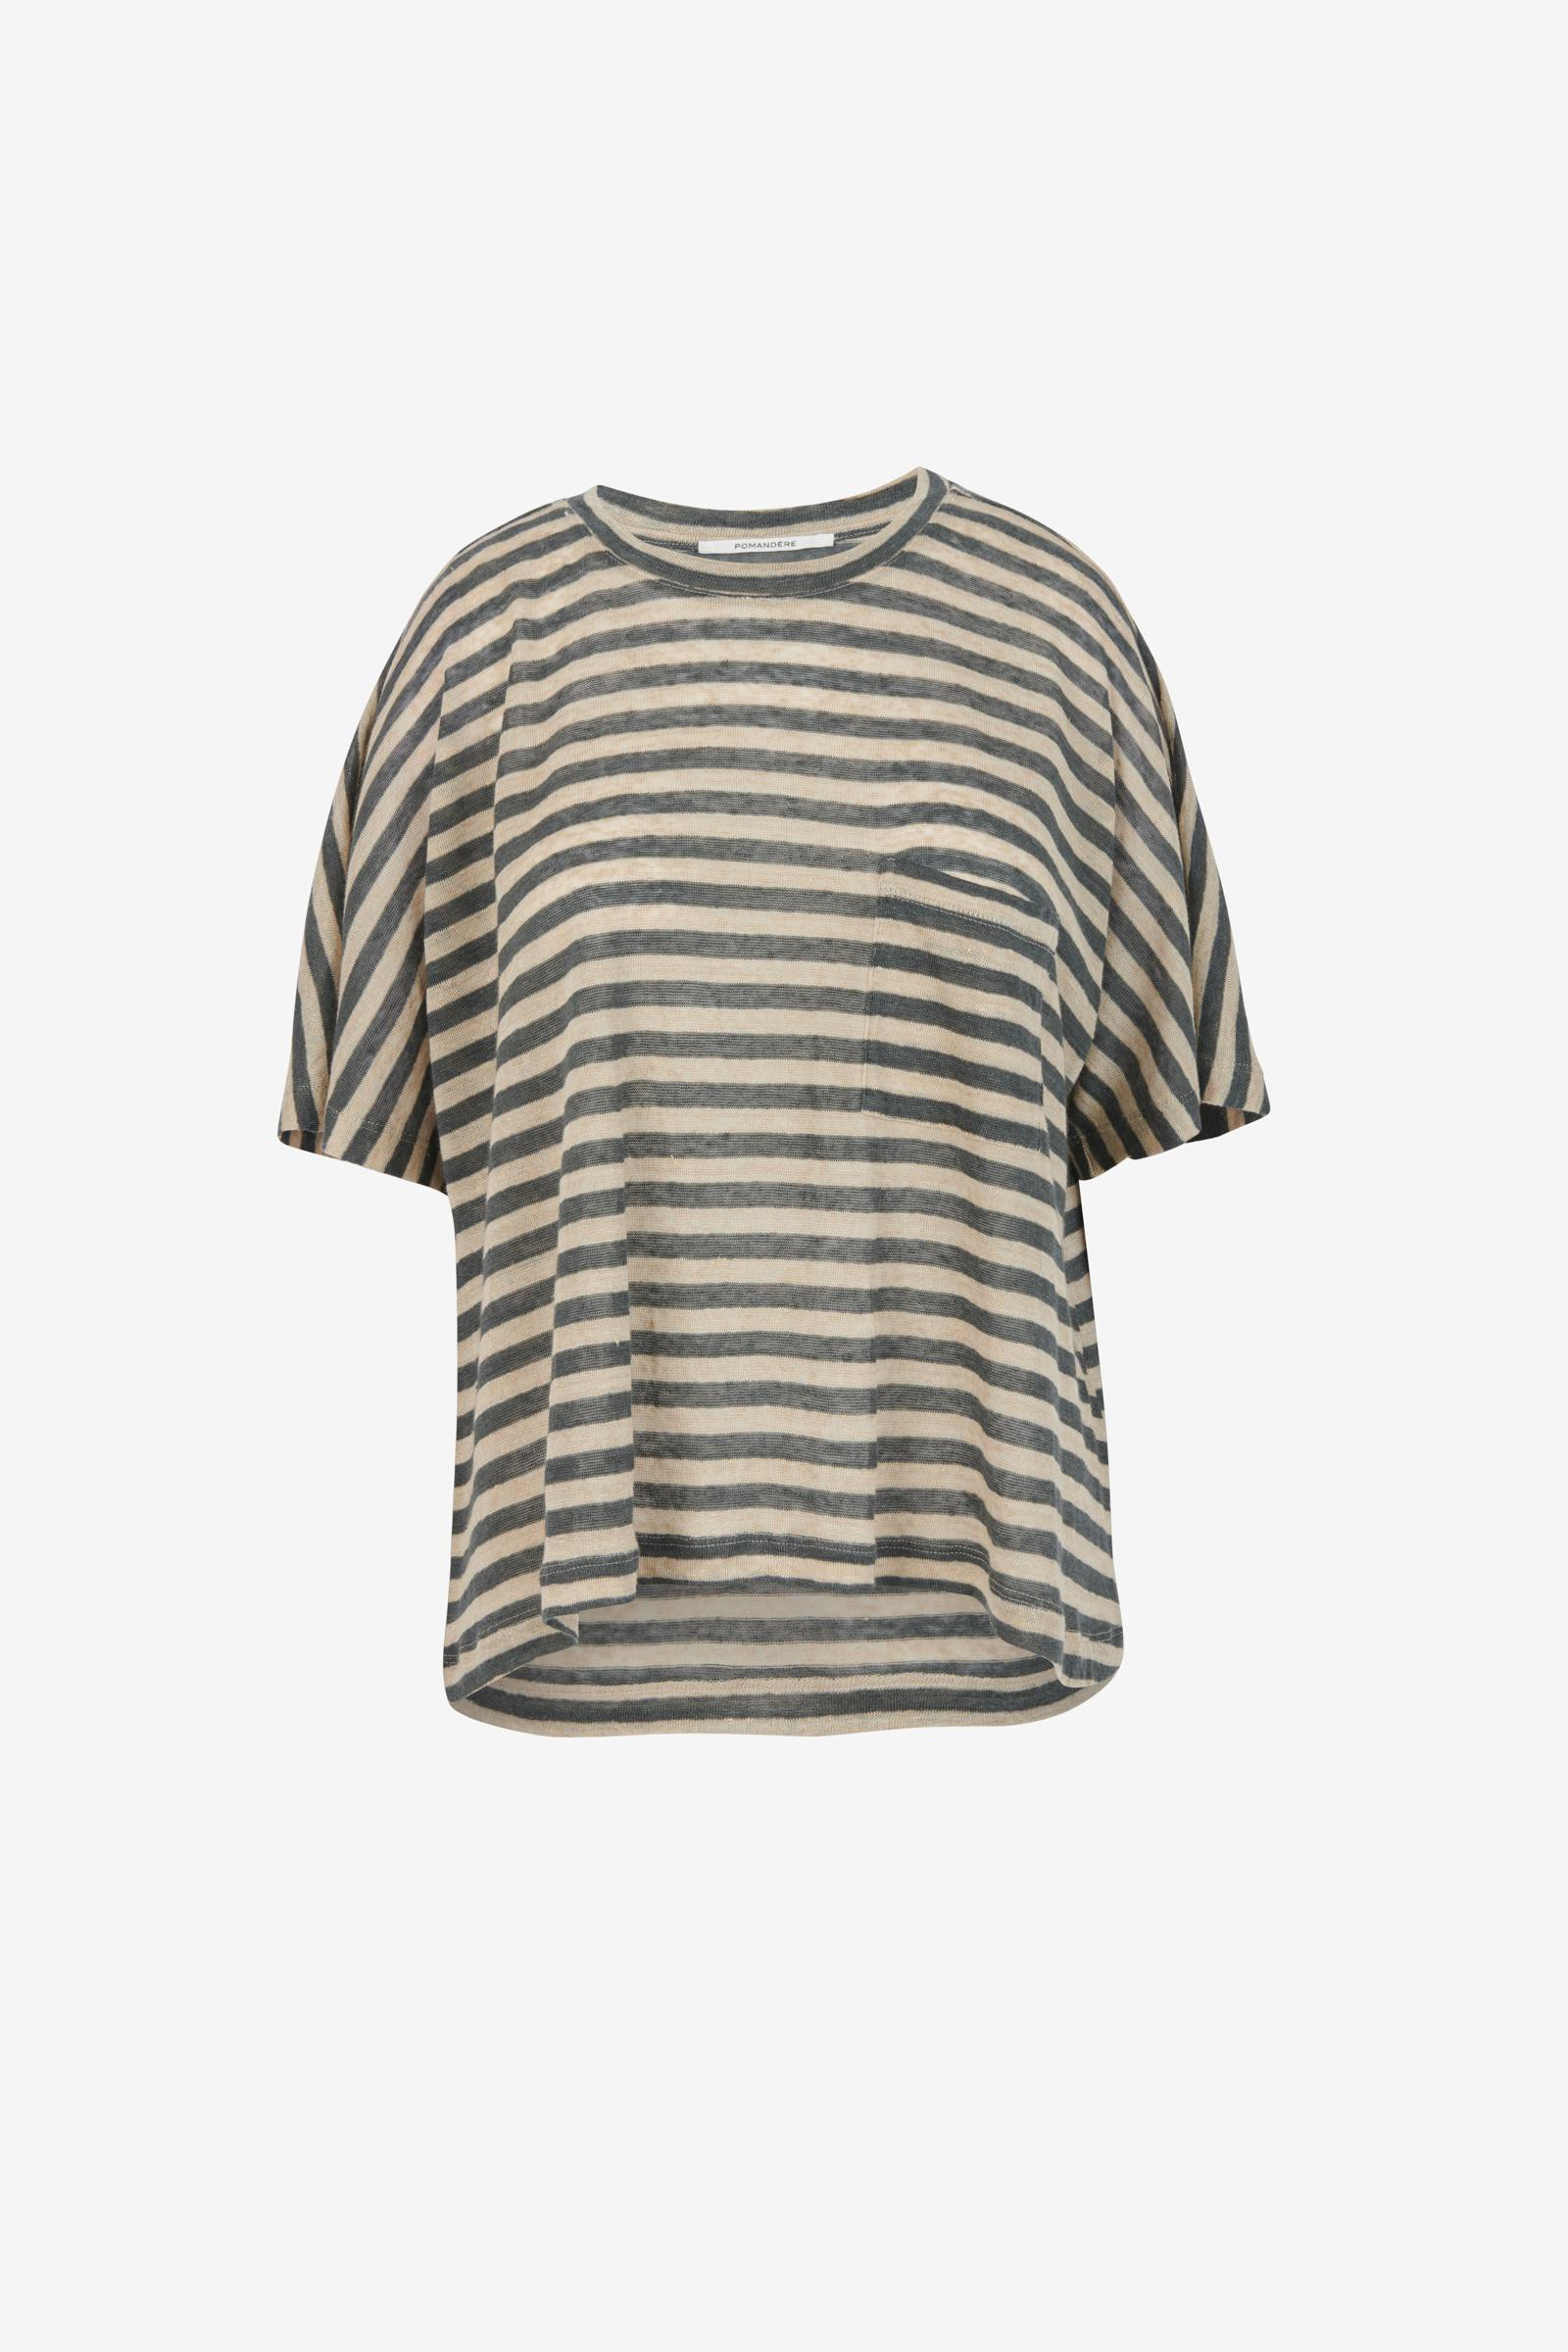 T-shirt PAMPOLINO taille divers NWT rrp £ 22